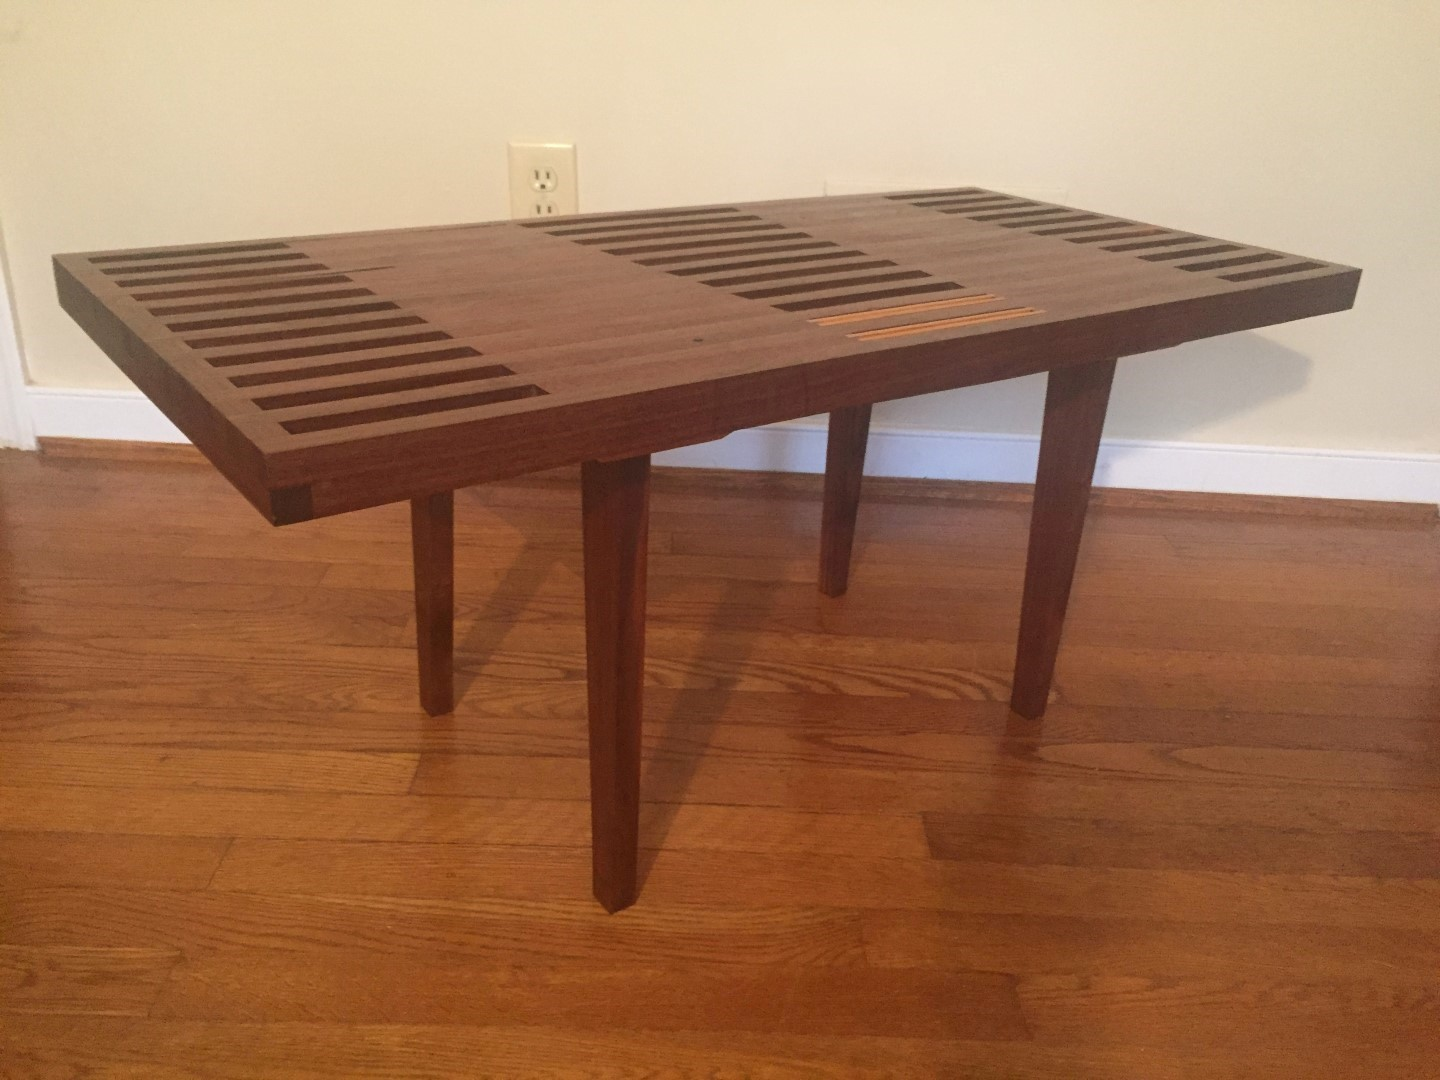 Coffee table in walnut and mahogany with oak accents by nathaniel coffee table in walnut and mahogany with oak accents by nathaniel newcomb geotapseo Gallery